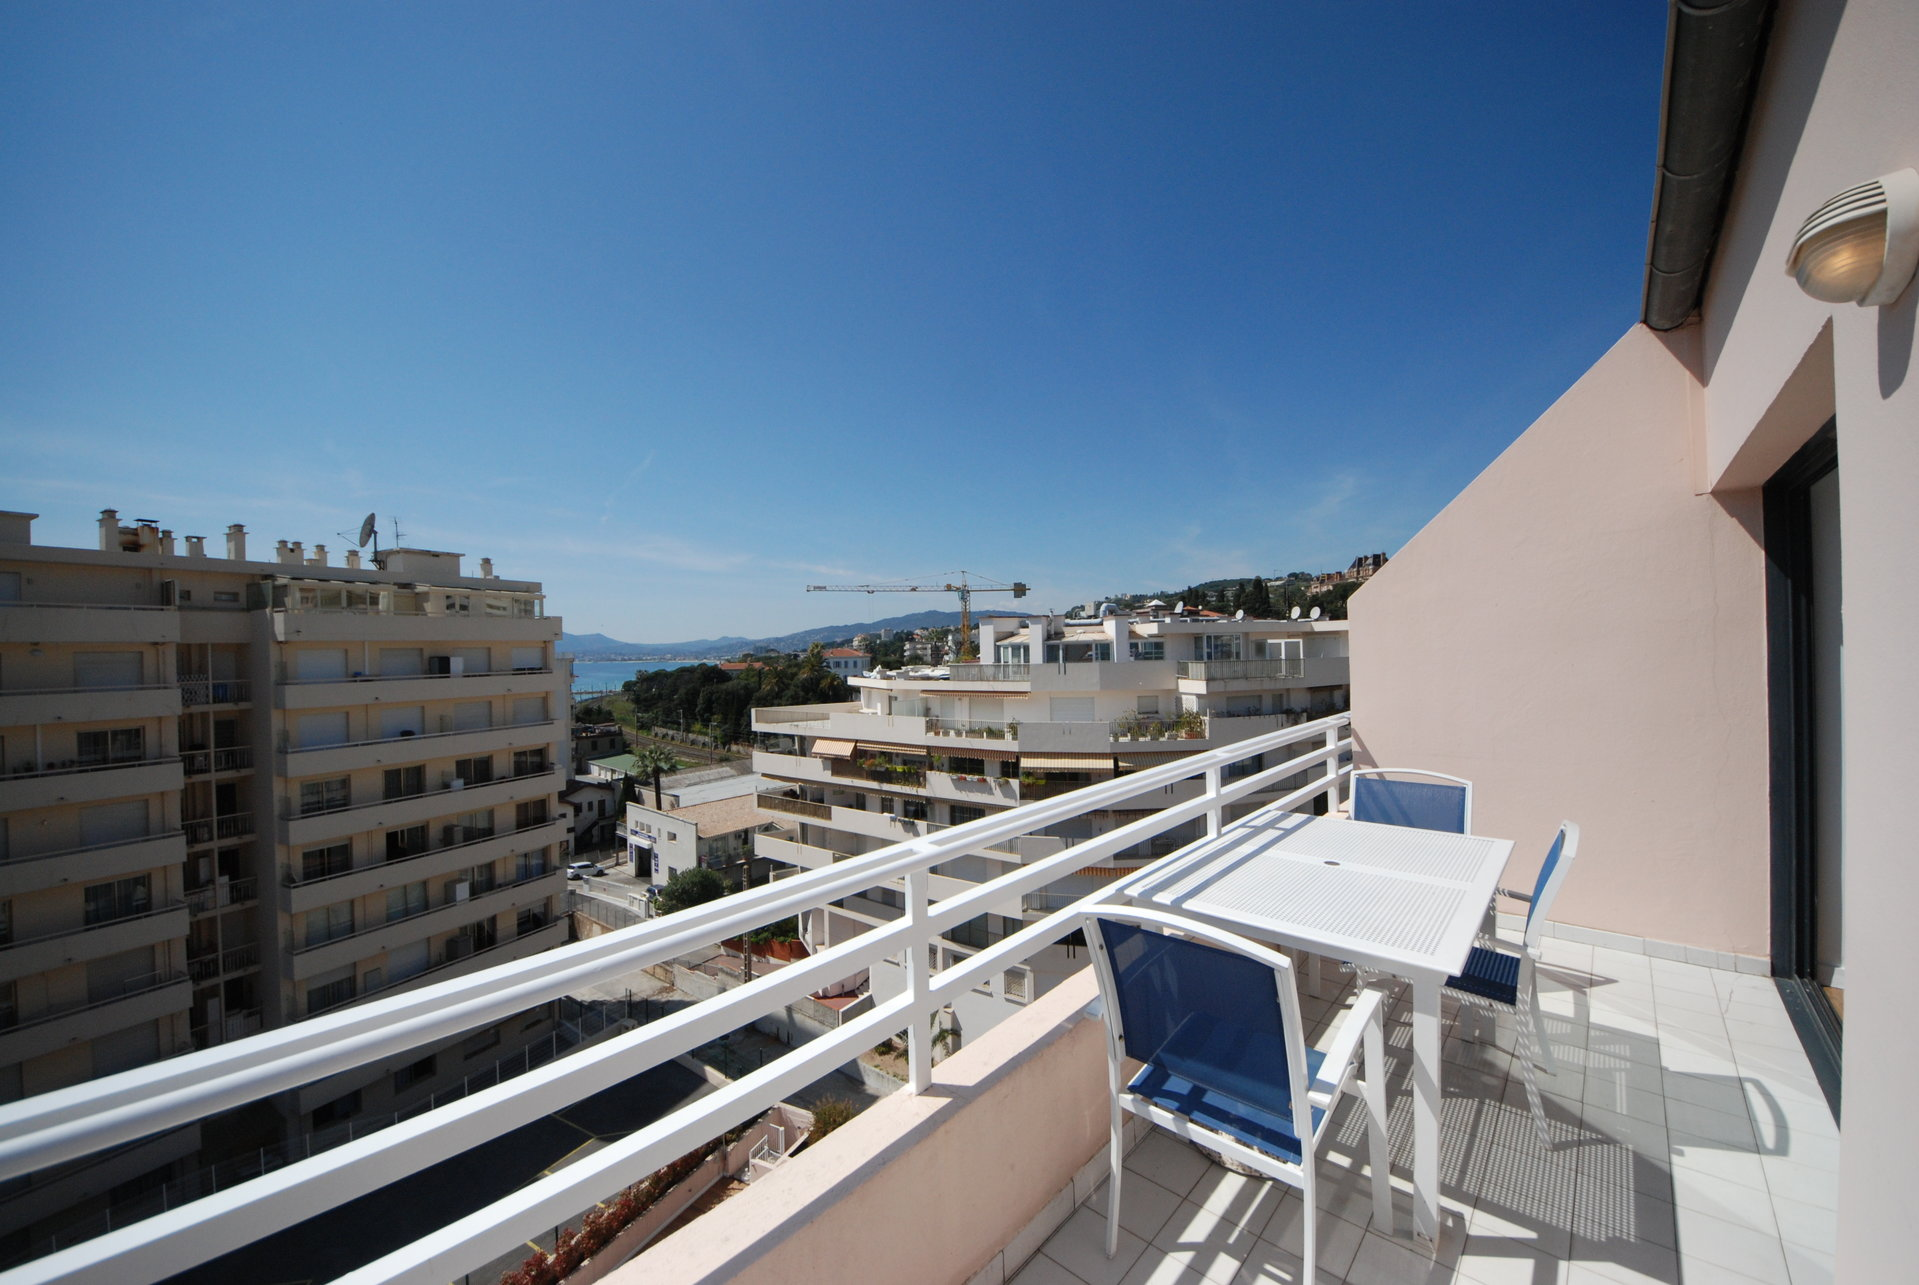 100 m for the beaches large studio-cabin terrace and glimpse sea view